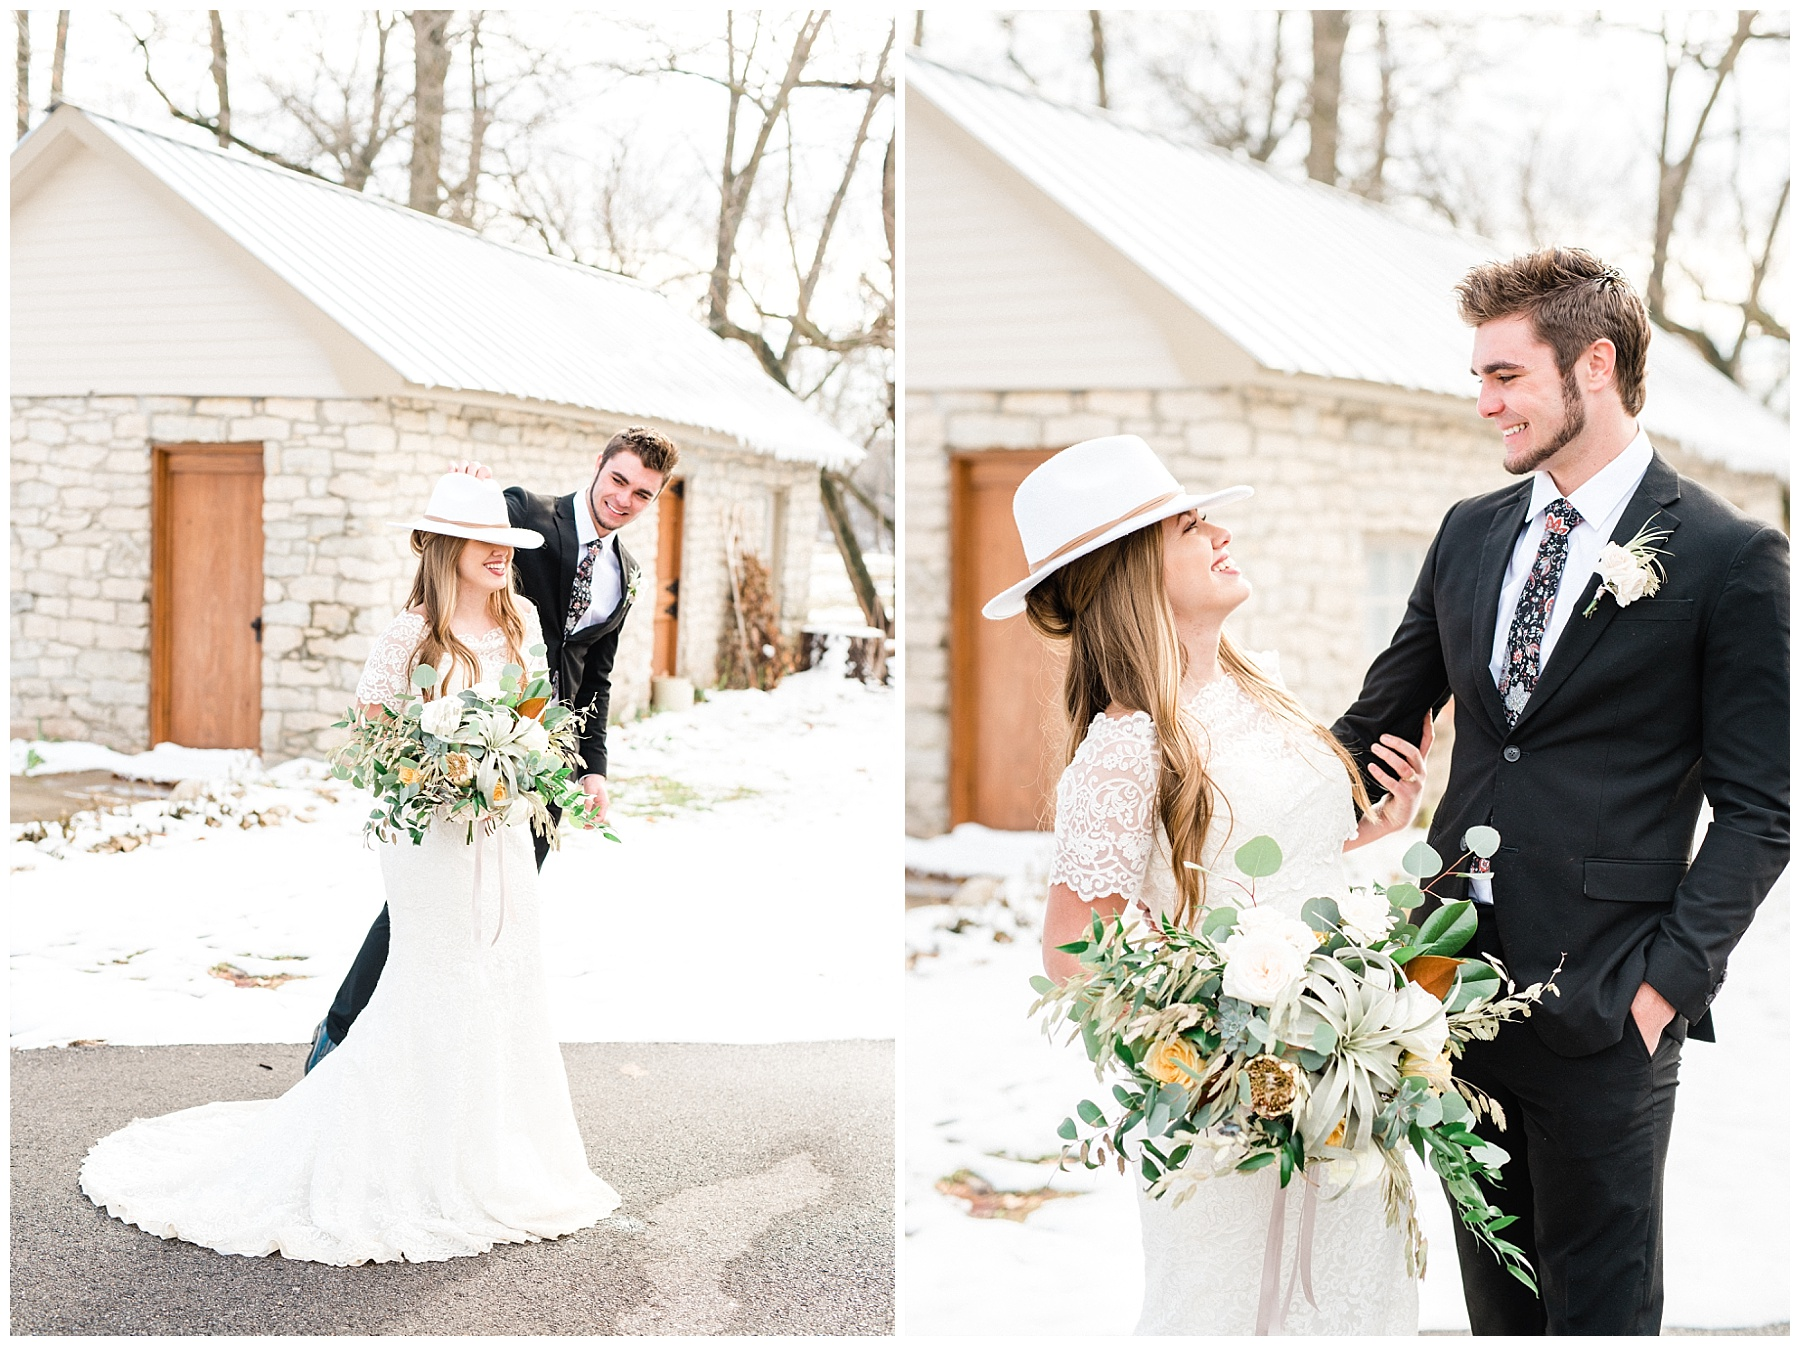 Snowy Winter Wedding at Wildcliff Events Lake With Earthy Jewel Tones and Organic Refined Style by Kelsi Kliethermes Photography Kansas City Missouri Wedding Photographer_0072.jpg